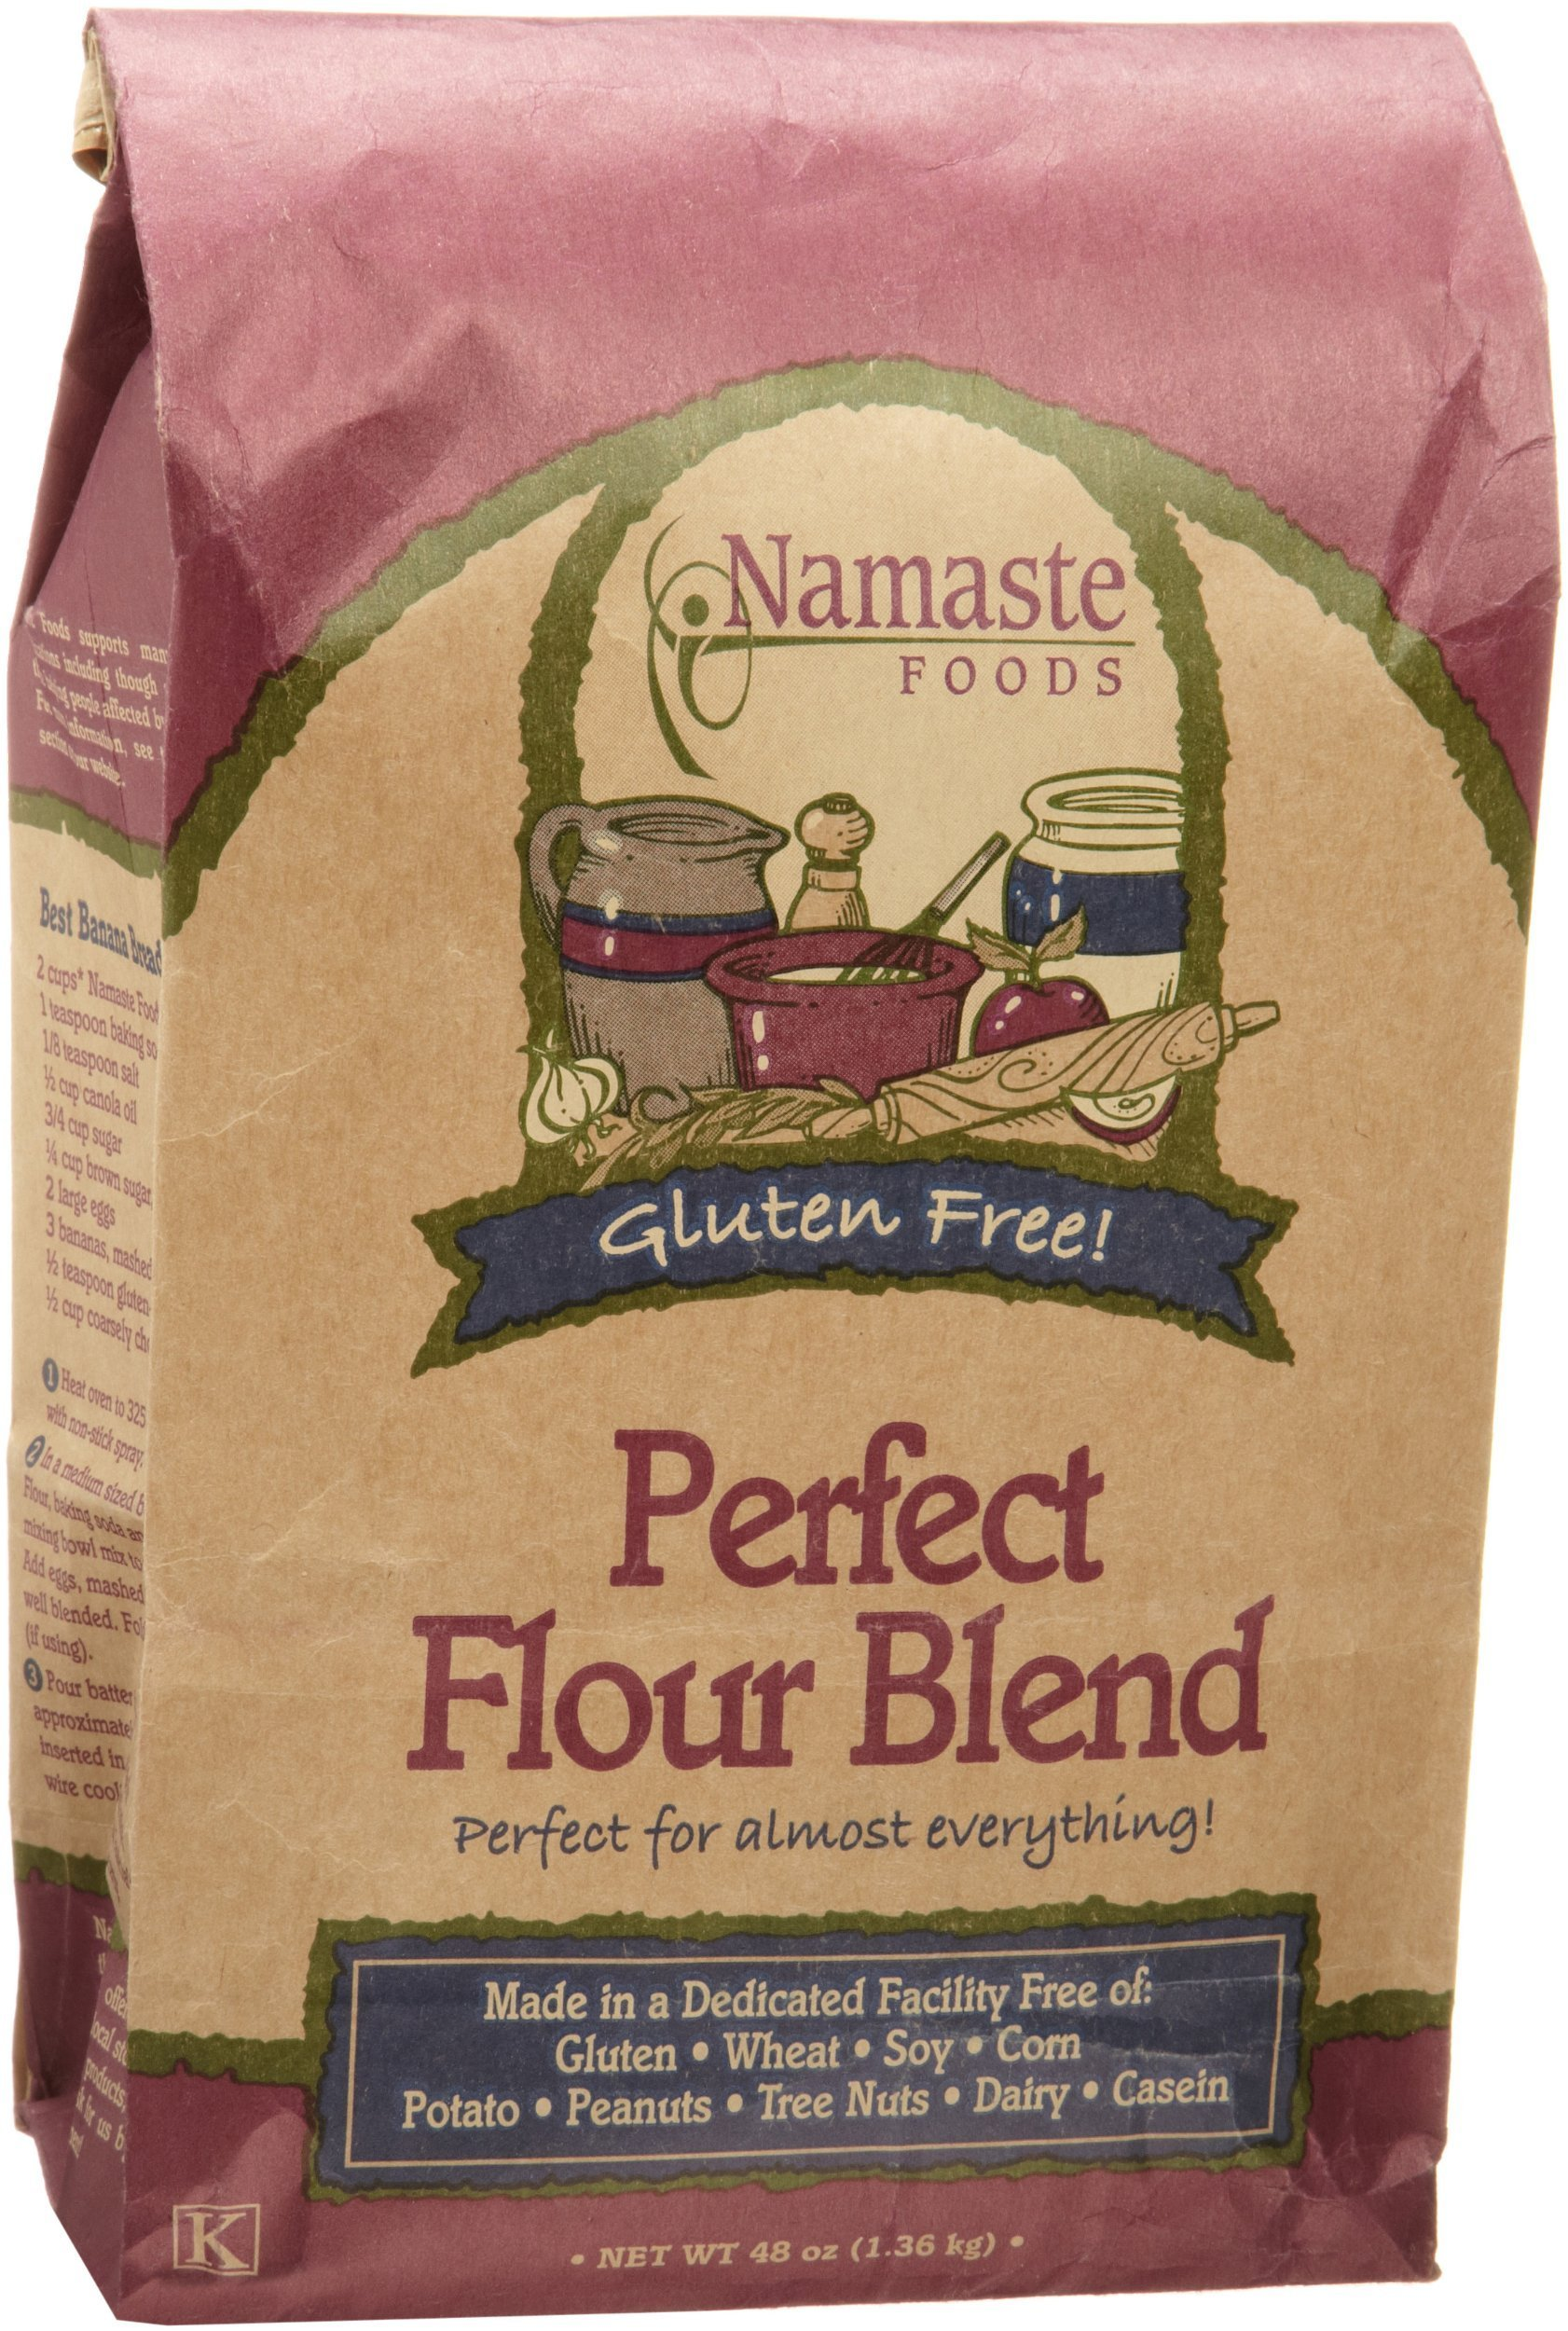 Namaste Foods, Gluten Free Perfect Flour Blend, 48-Ounce Bags (Pack of 6) by Namaste Foods (Image #2)